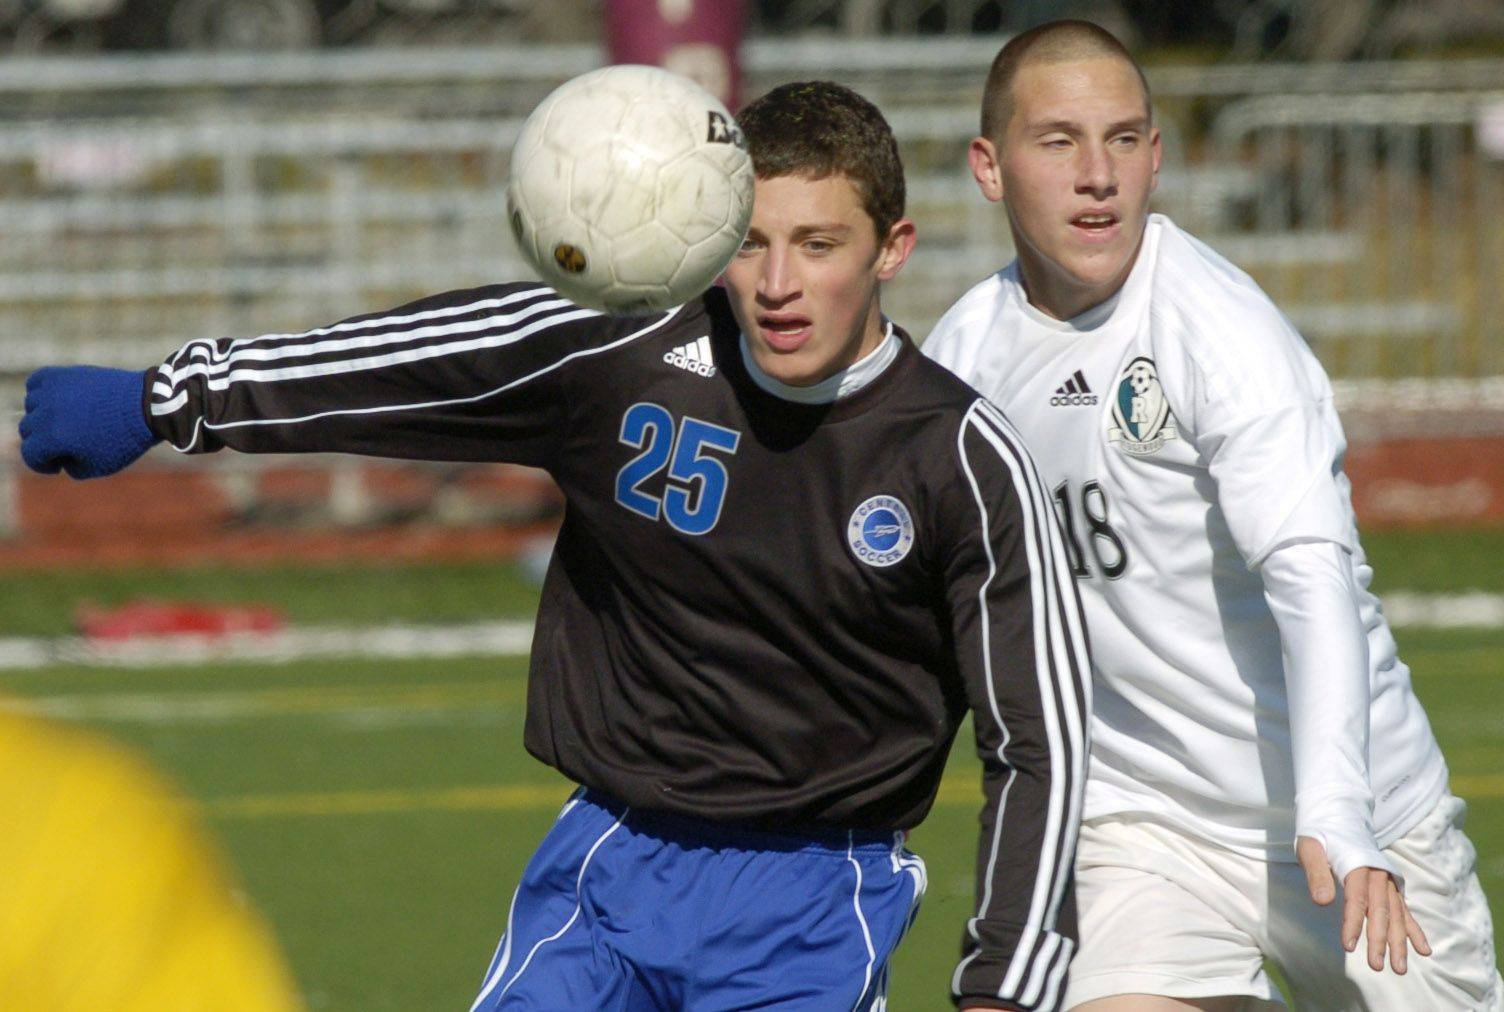 The ball bounces in front of Burlington Central's Brad Herron, left, and Ridgewood's Rafal Maslowski.